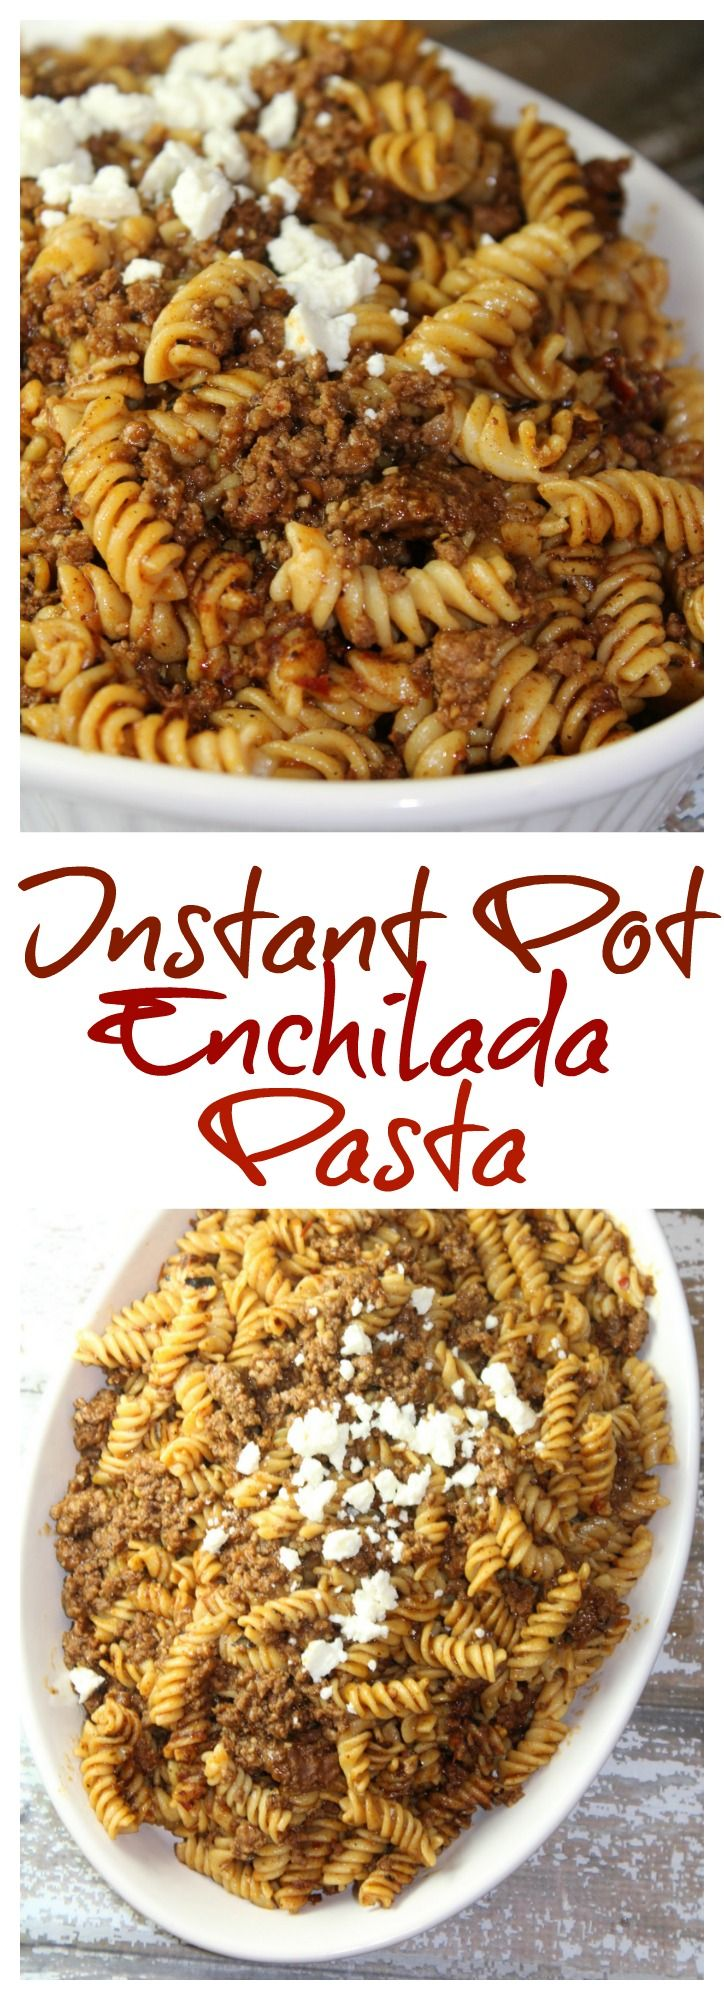 This easy one pot enchilada pasta (Instant Pot) is one of the best instant pot recipes that combines ground beef, pasta, and enchilada sauce.